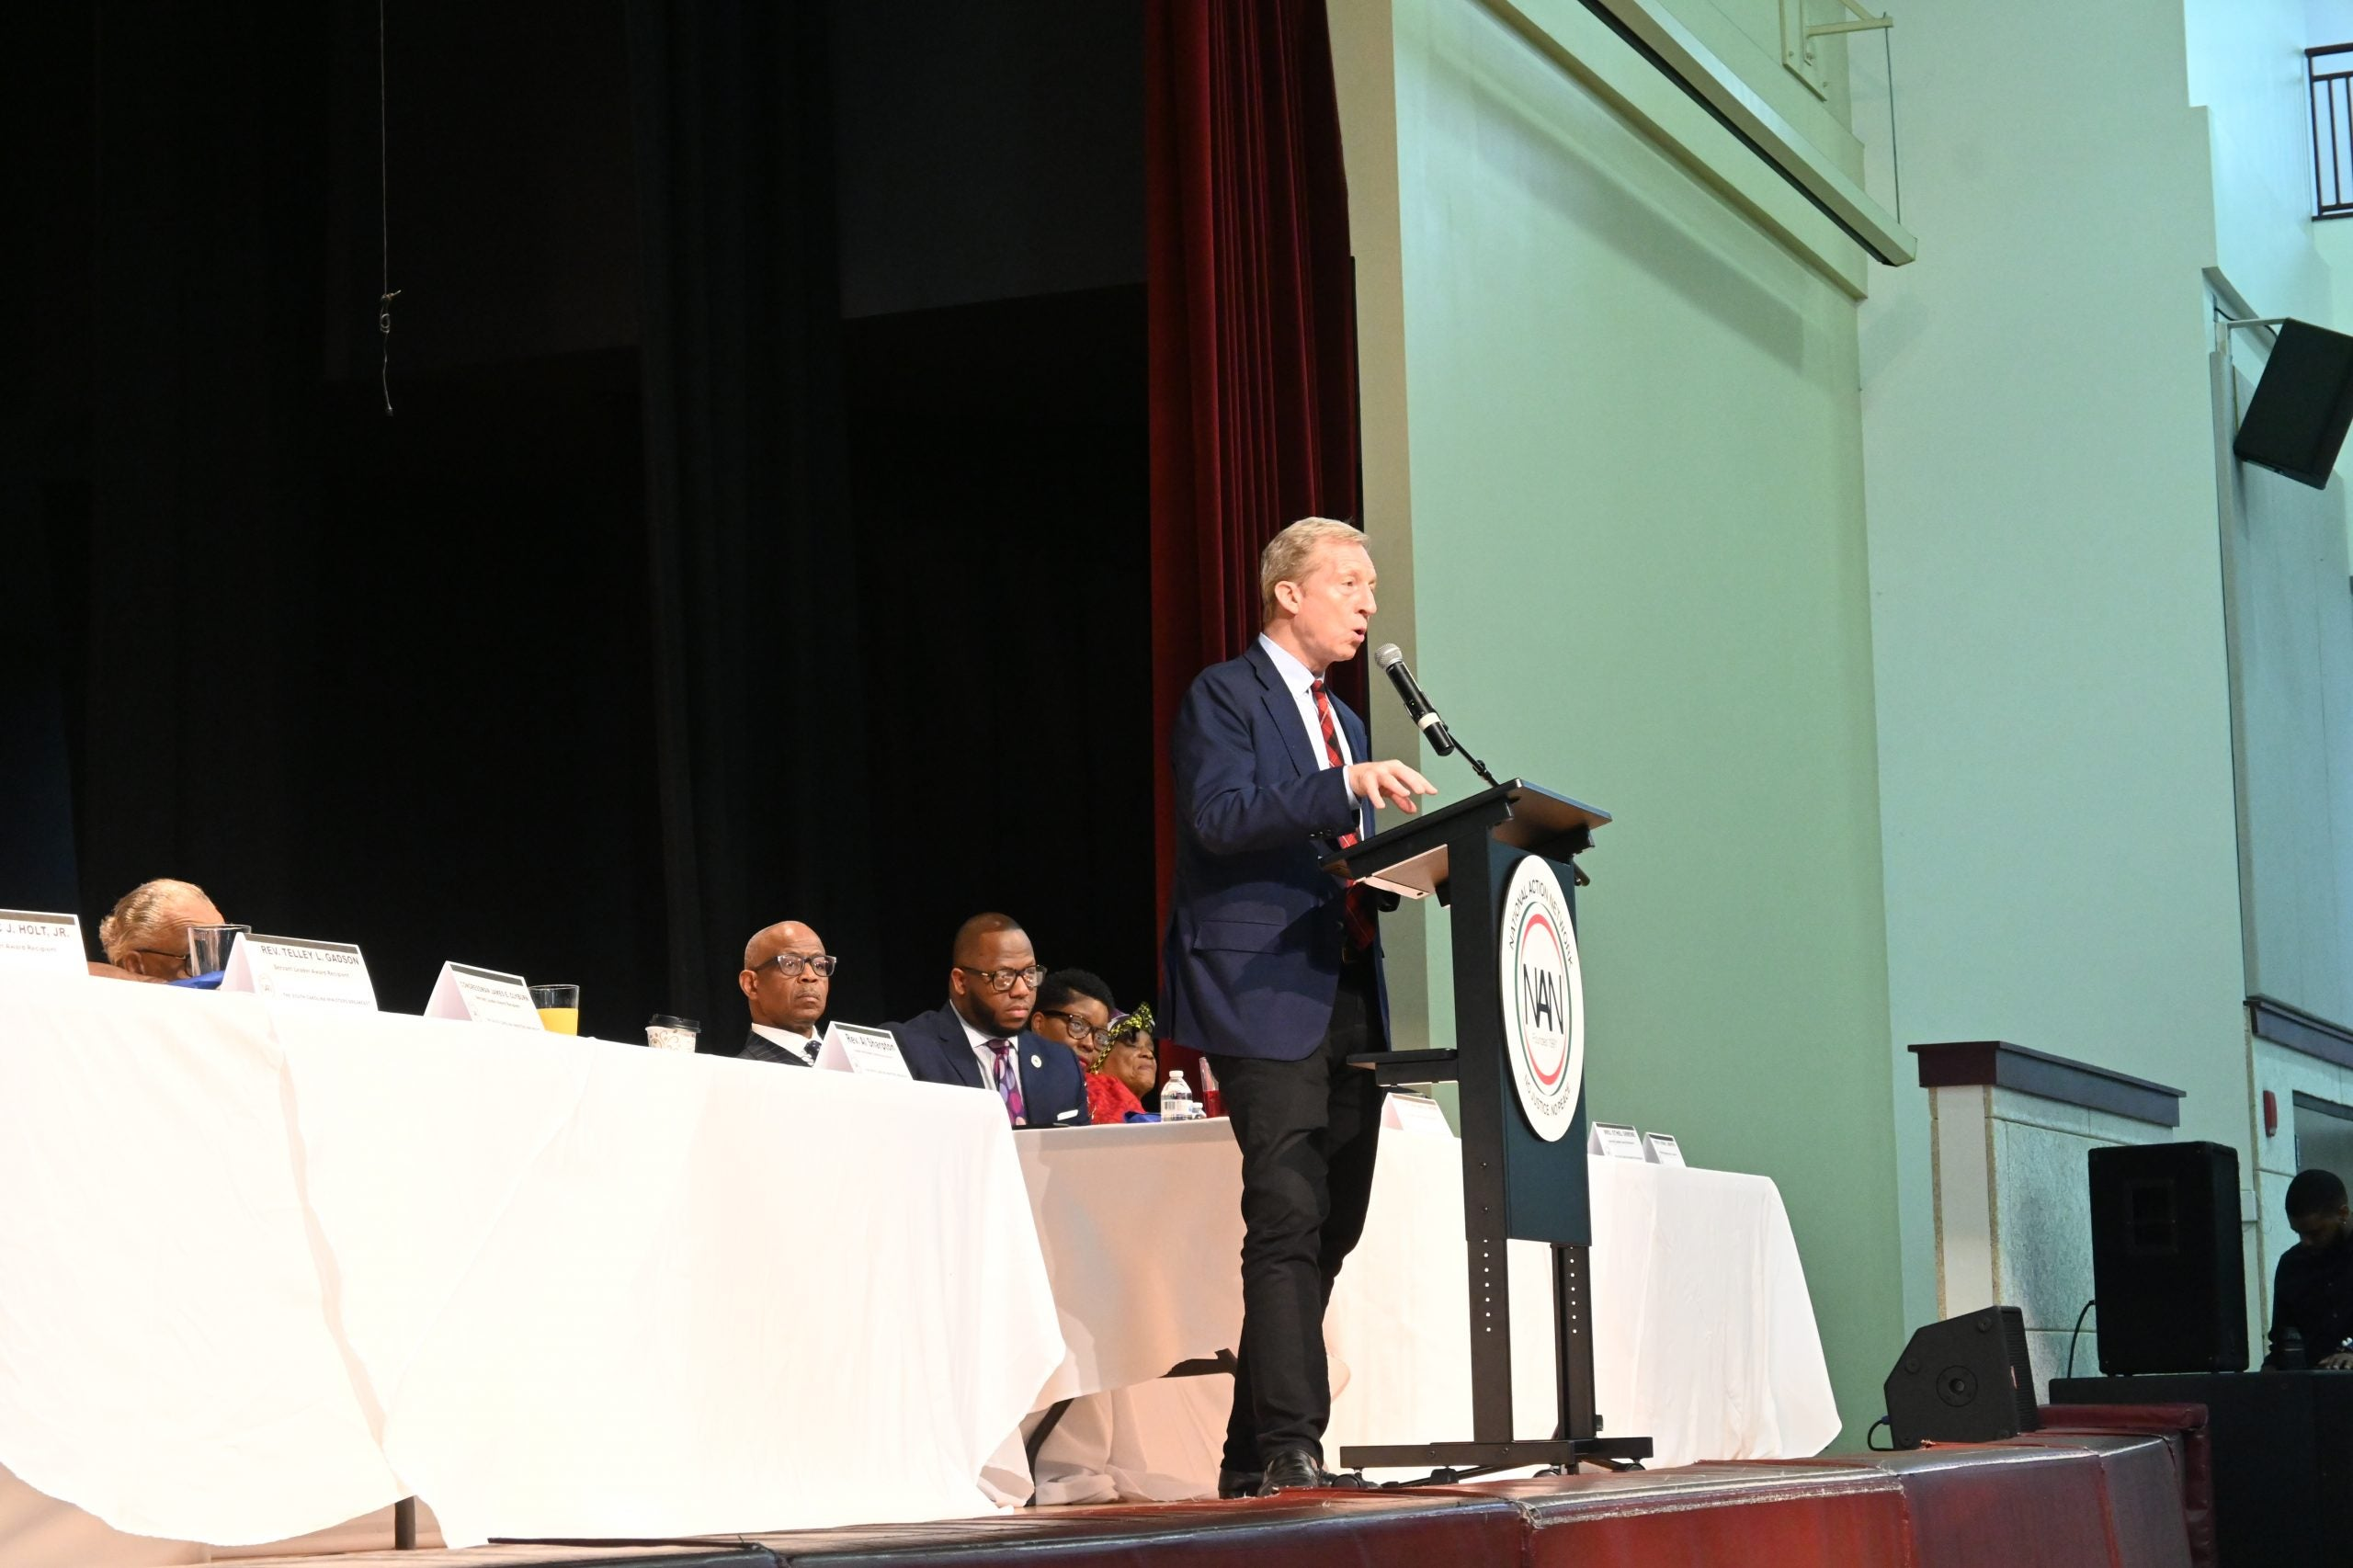 Presidential candidate Tom Steyer discusses his plan for Black America during a speech to South Carolina voters at the National Action Network breakfast.